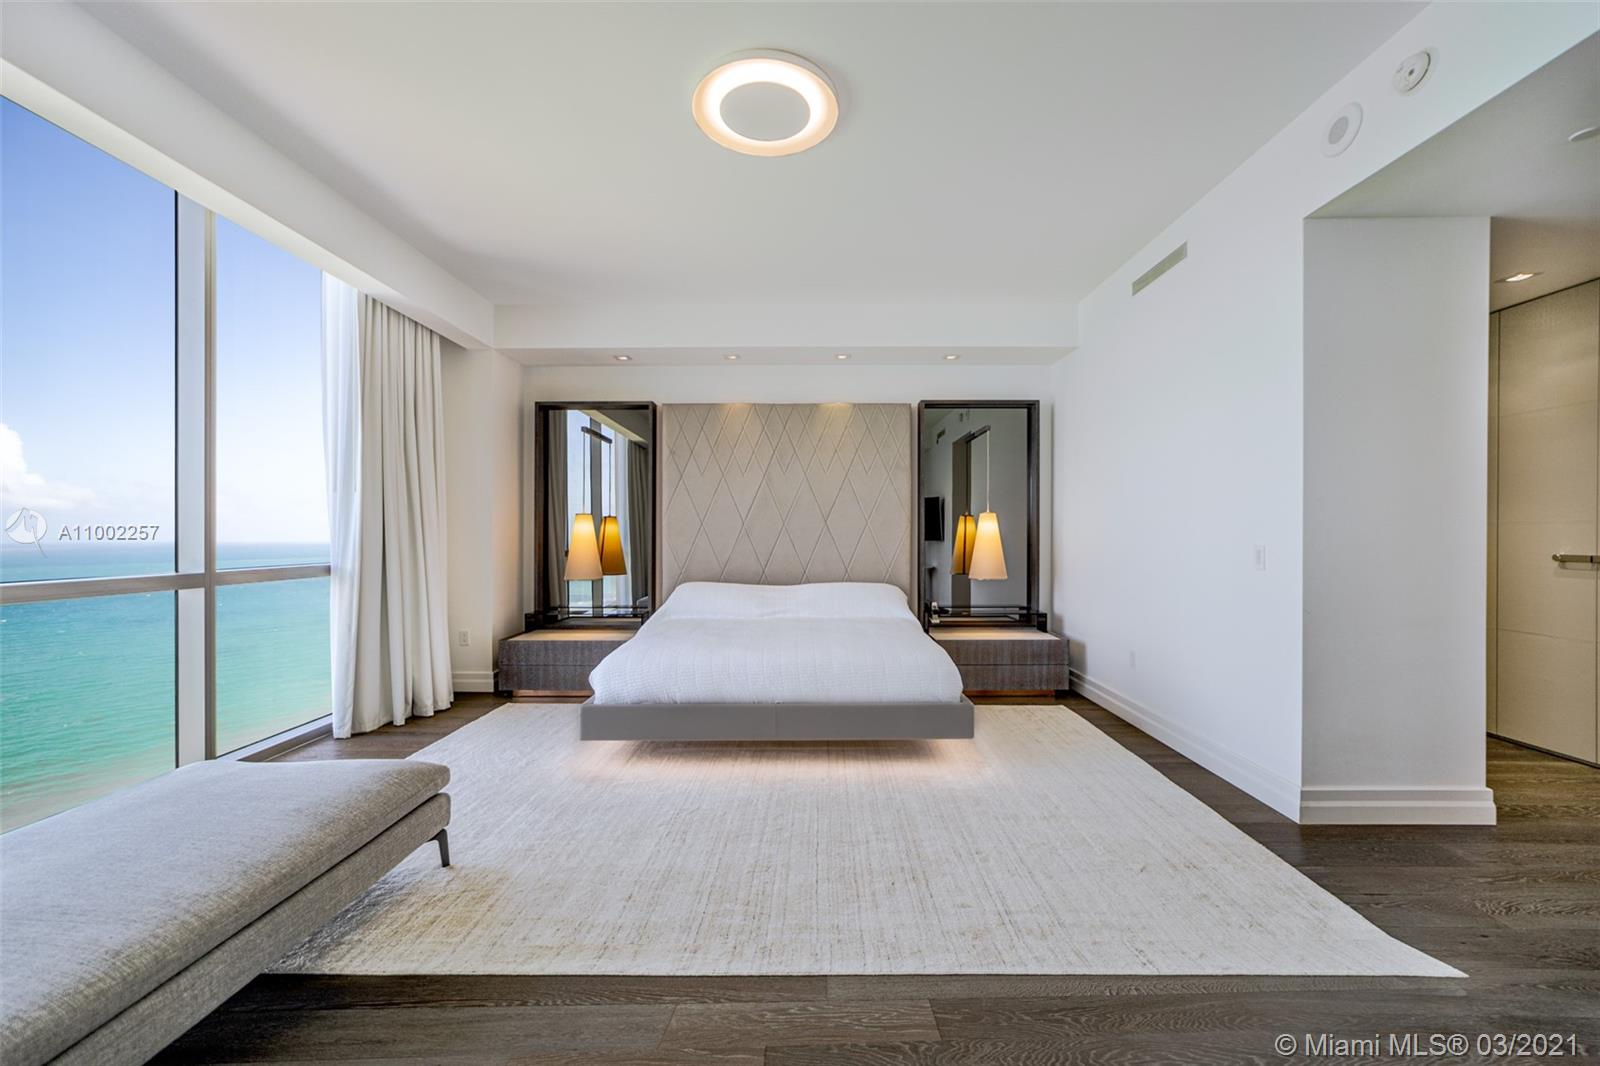 Spectacular Sunny Isles Residences in the coveted Mansions at Acqualina. Top of the line appliances and completely turnkey, all you need is your toothbrush. Best priced, 4-bedroom unit in the building. Furniture included** Resort style living. Must see!